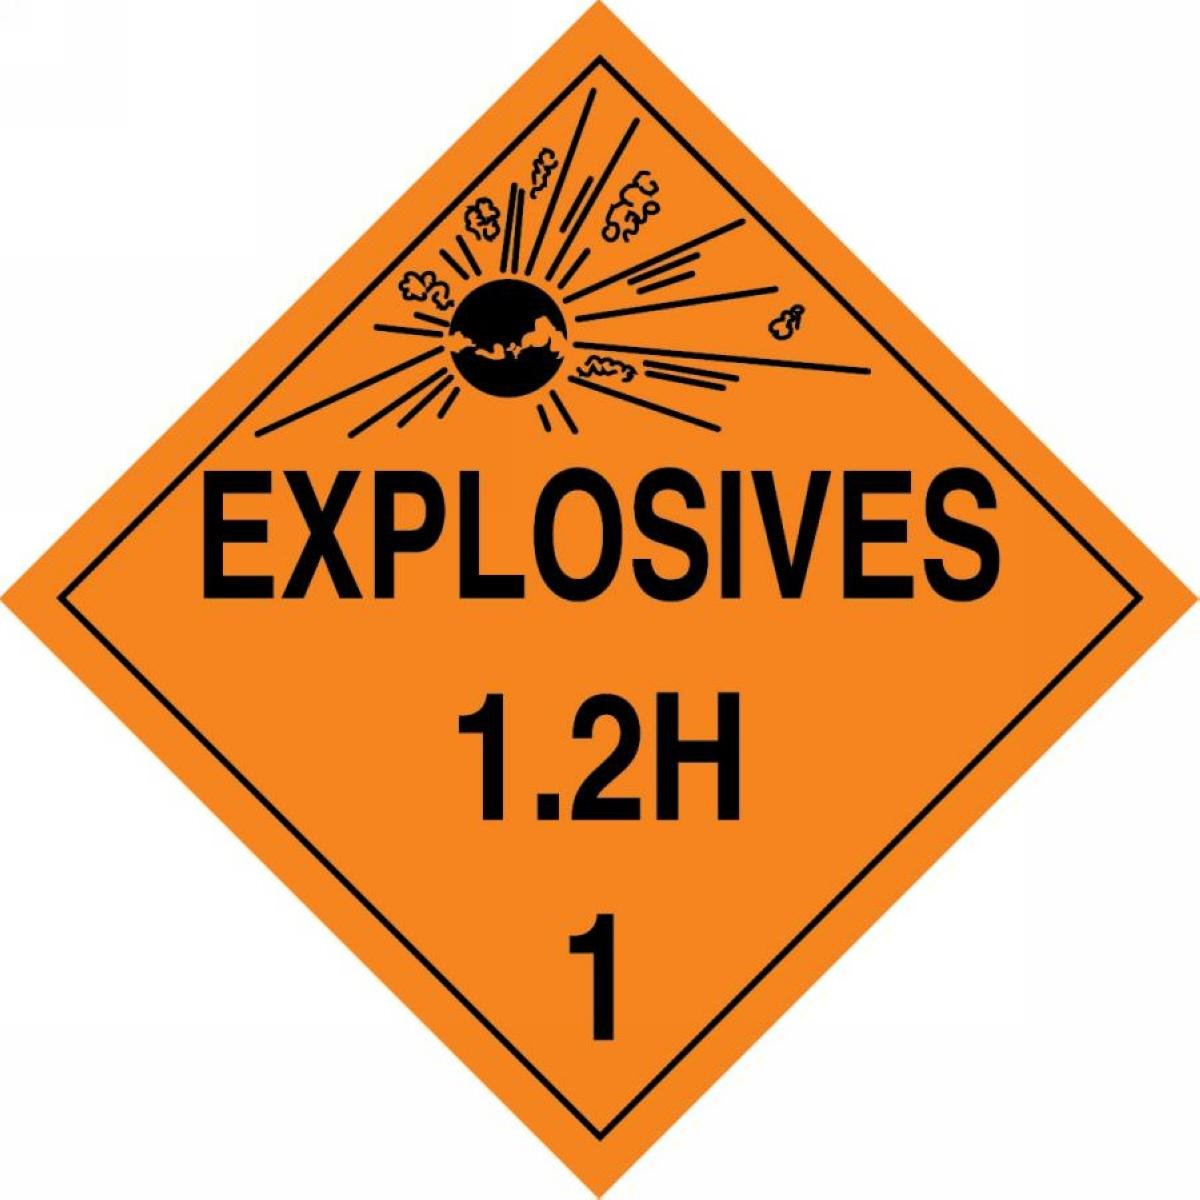 Accuform MPL116CT25 PF-Cardstock Hazard Class 1/Division 2H DOT Placard, Legend'EXPLOSIVES 1.2H 1' with Graphic, 10-3/4' Width x 10-3/4' Length, Black on Orange (Pack of 25)